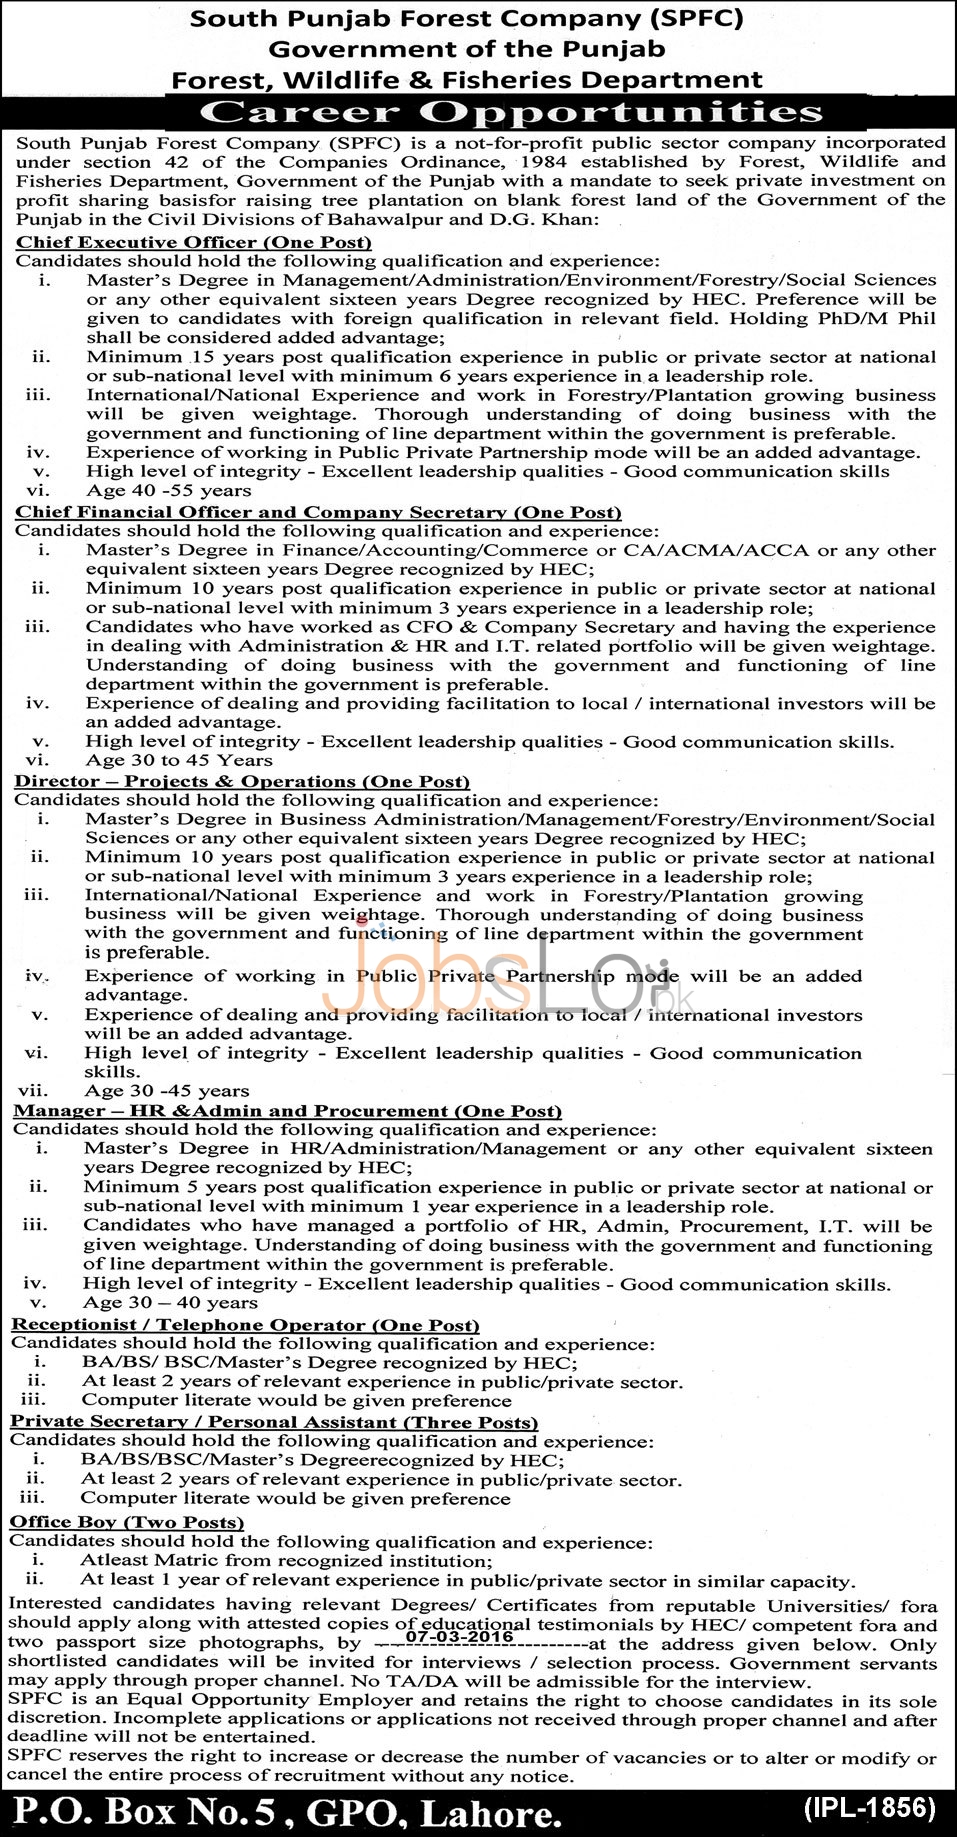 Employment Offers in Forest, Wildlife & Fisheries Department Punjab 2016 in Bahawalpur and DG Khan